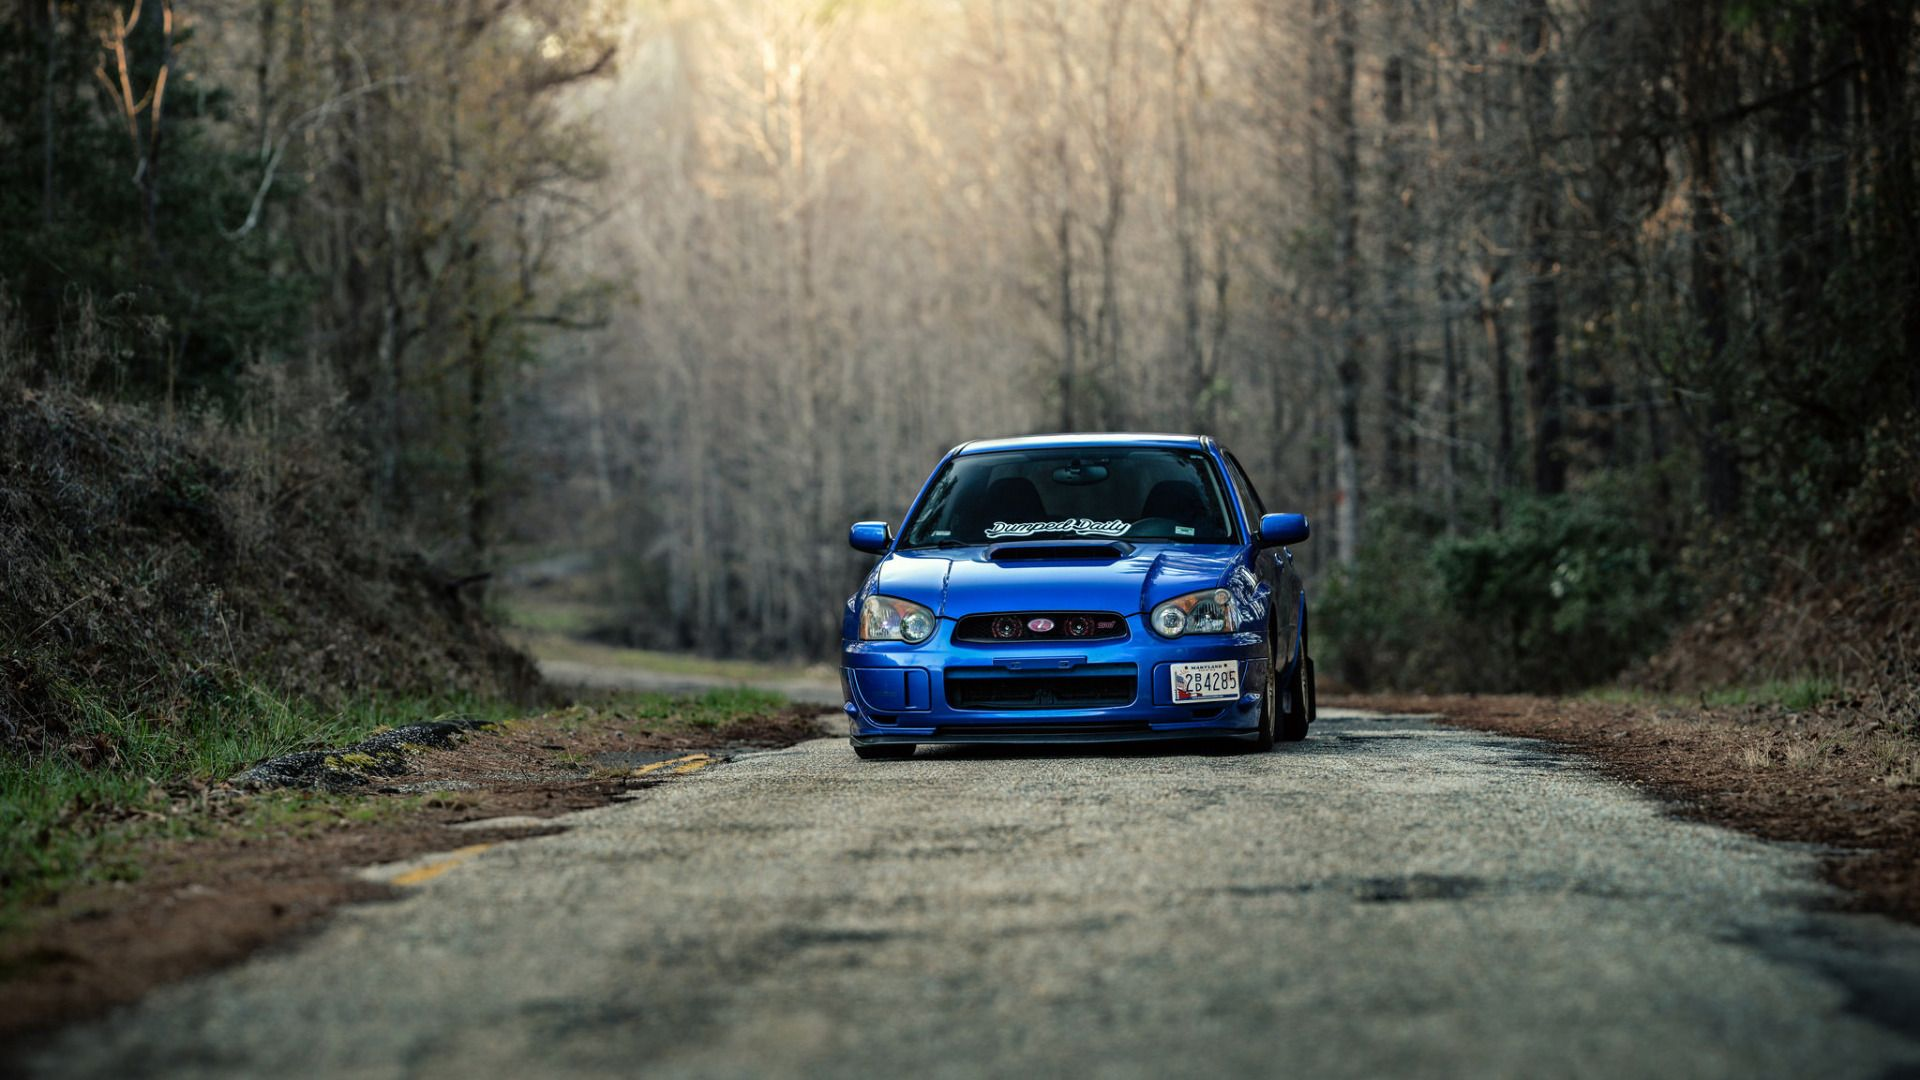 Subaru WRX free download wallpaper